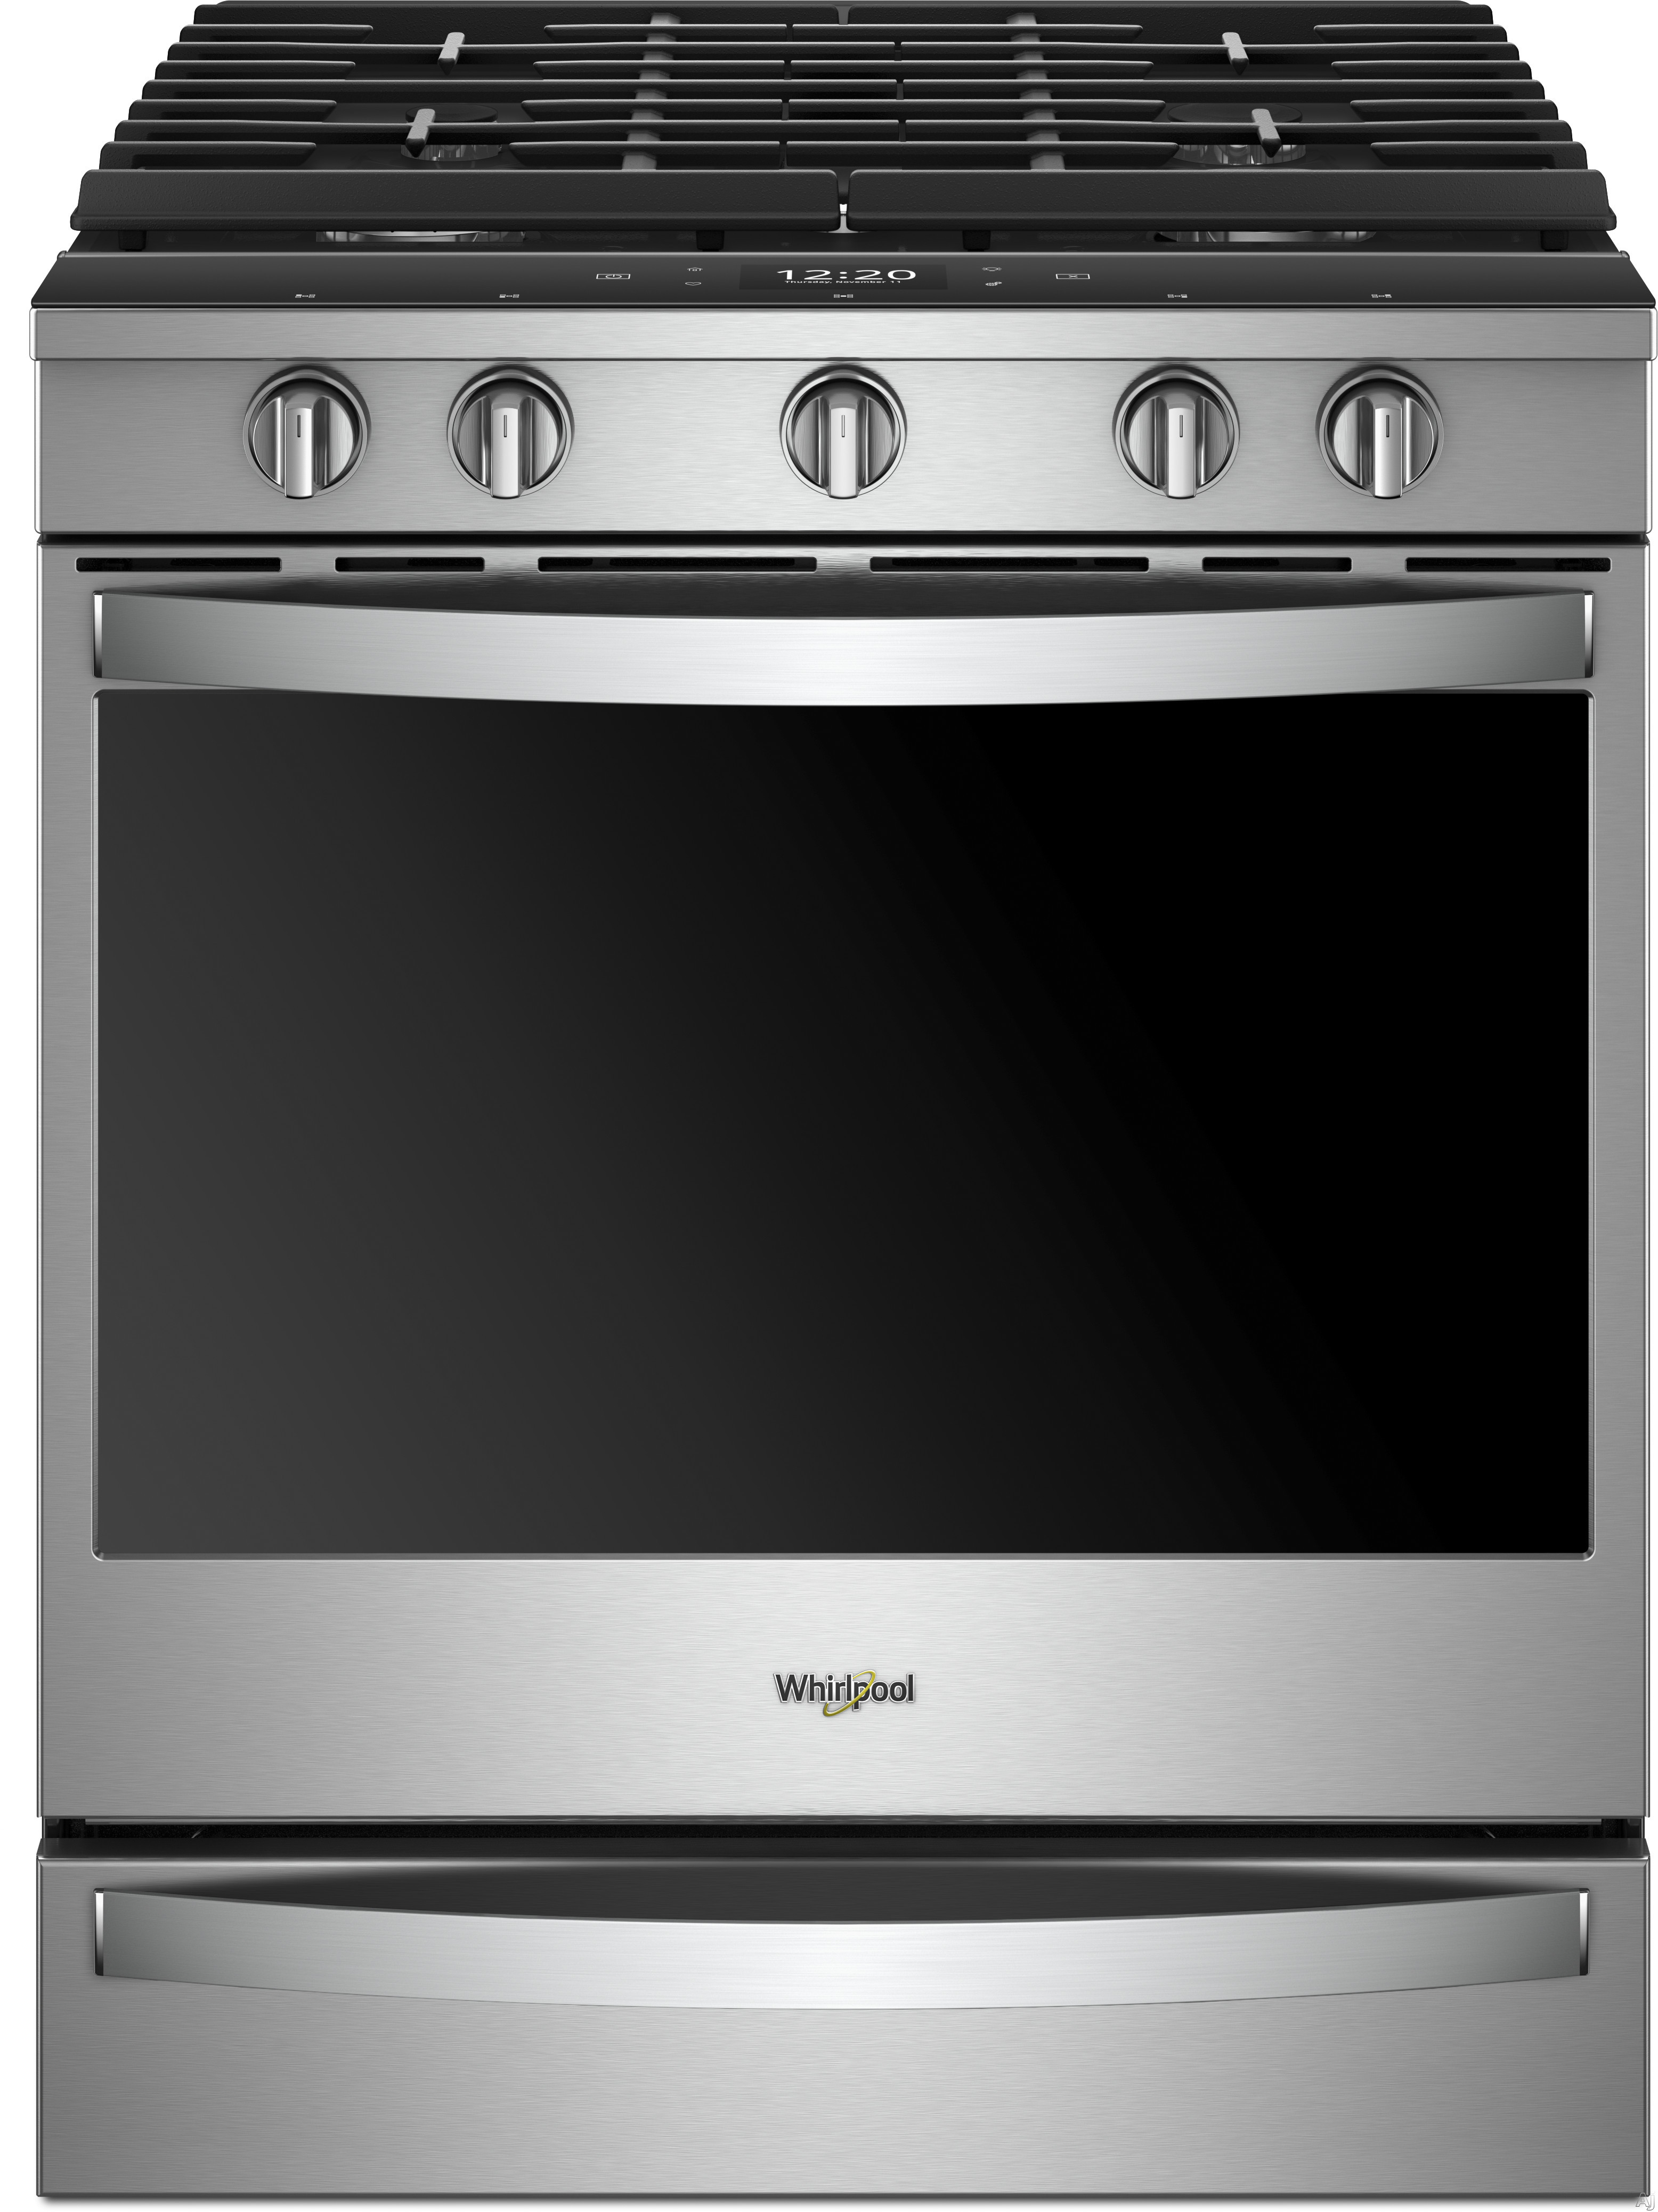 Whirlpool WEG950H0HZ 30 Inch Slide-In Gas Range with Fingerprint Resistance, True Convection System, Electronic Touch Control, Continuous Grates, Storage Drawer and Sabbath Mode